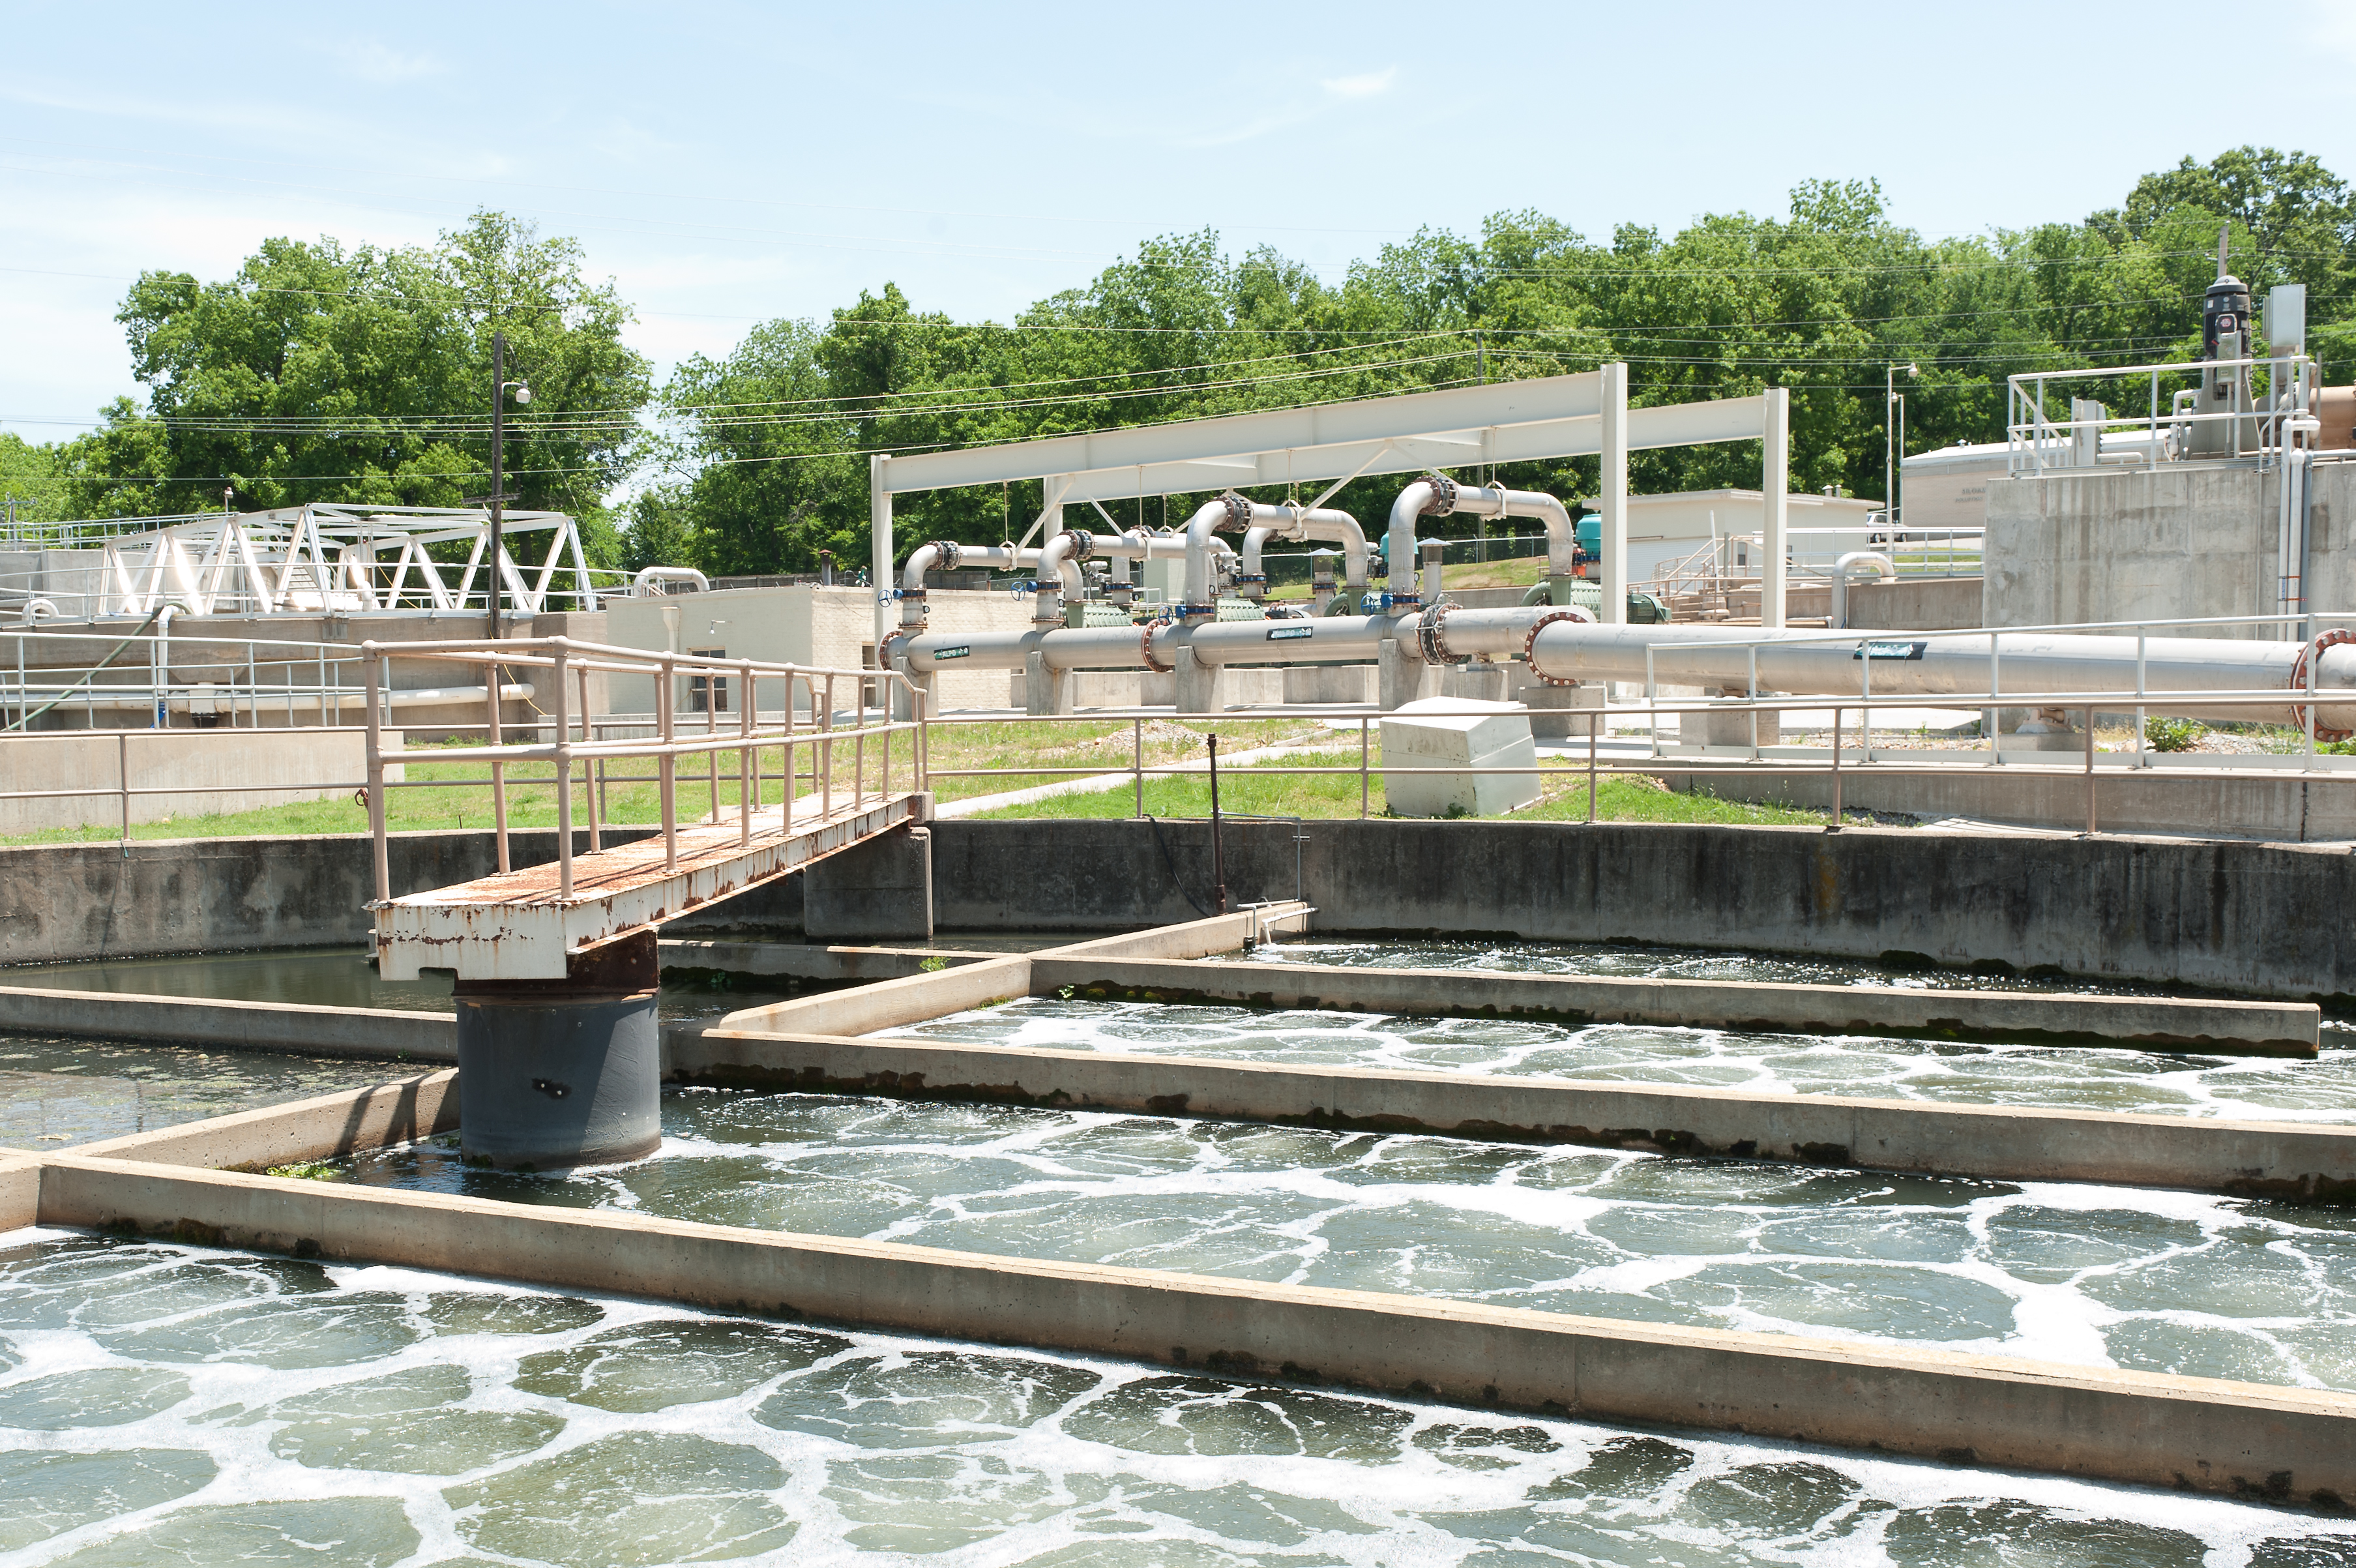 City of Siloam Springs Waste Water Treatment Plant09